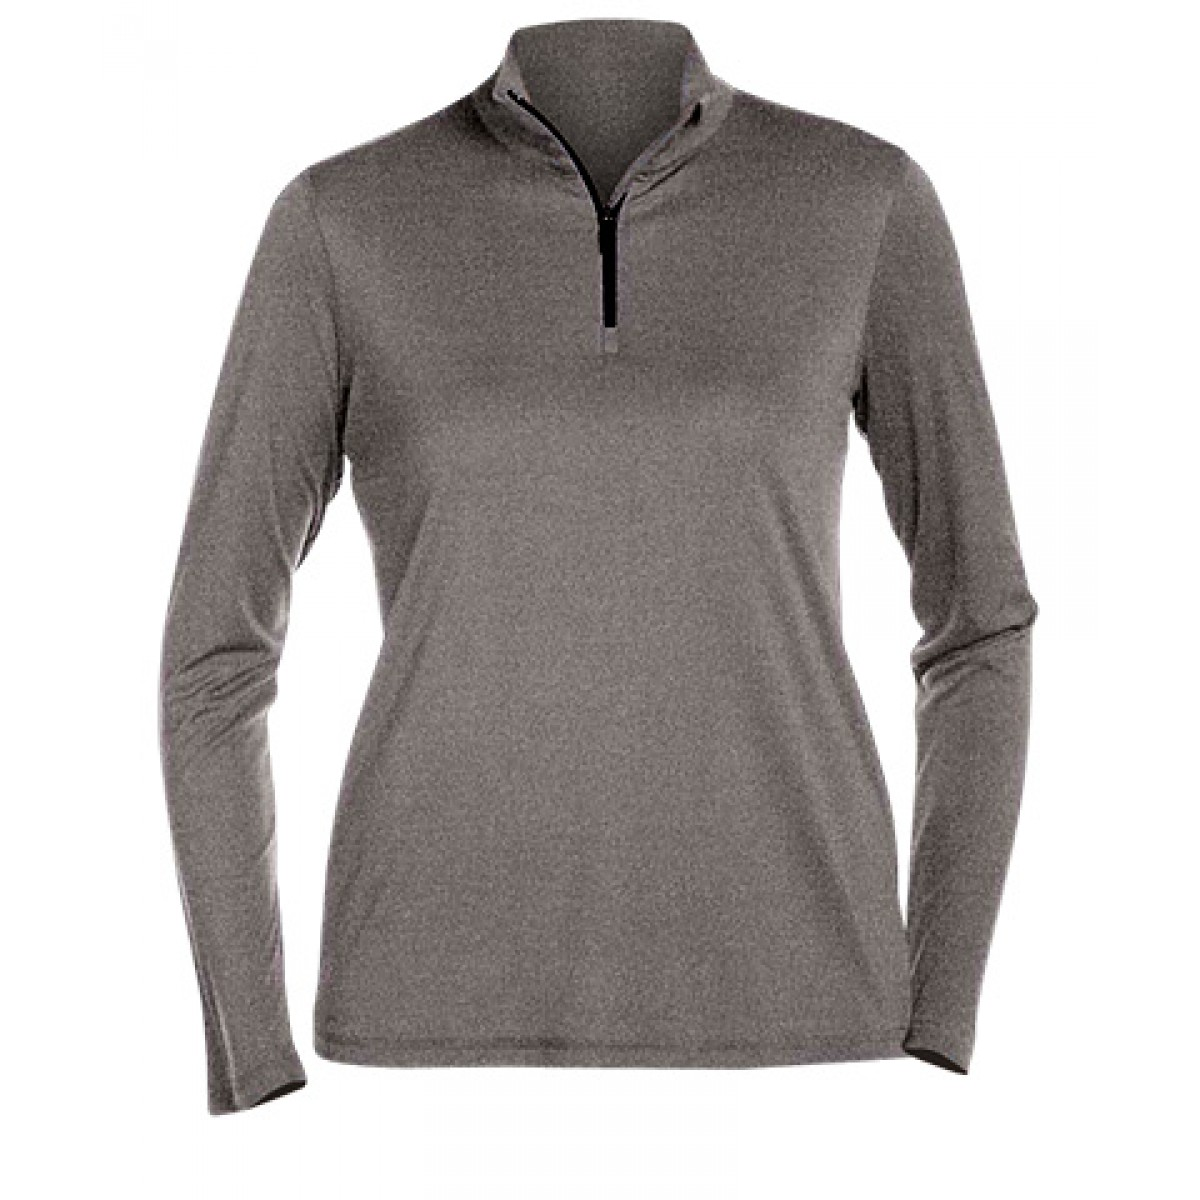 Ladies' Quarter-Zip Lightweight Pullover-Sports Grey-L